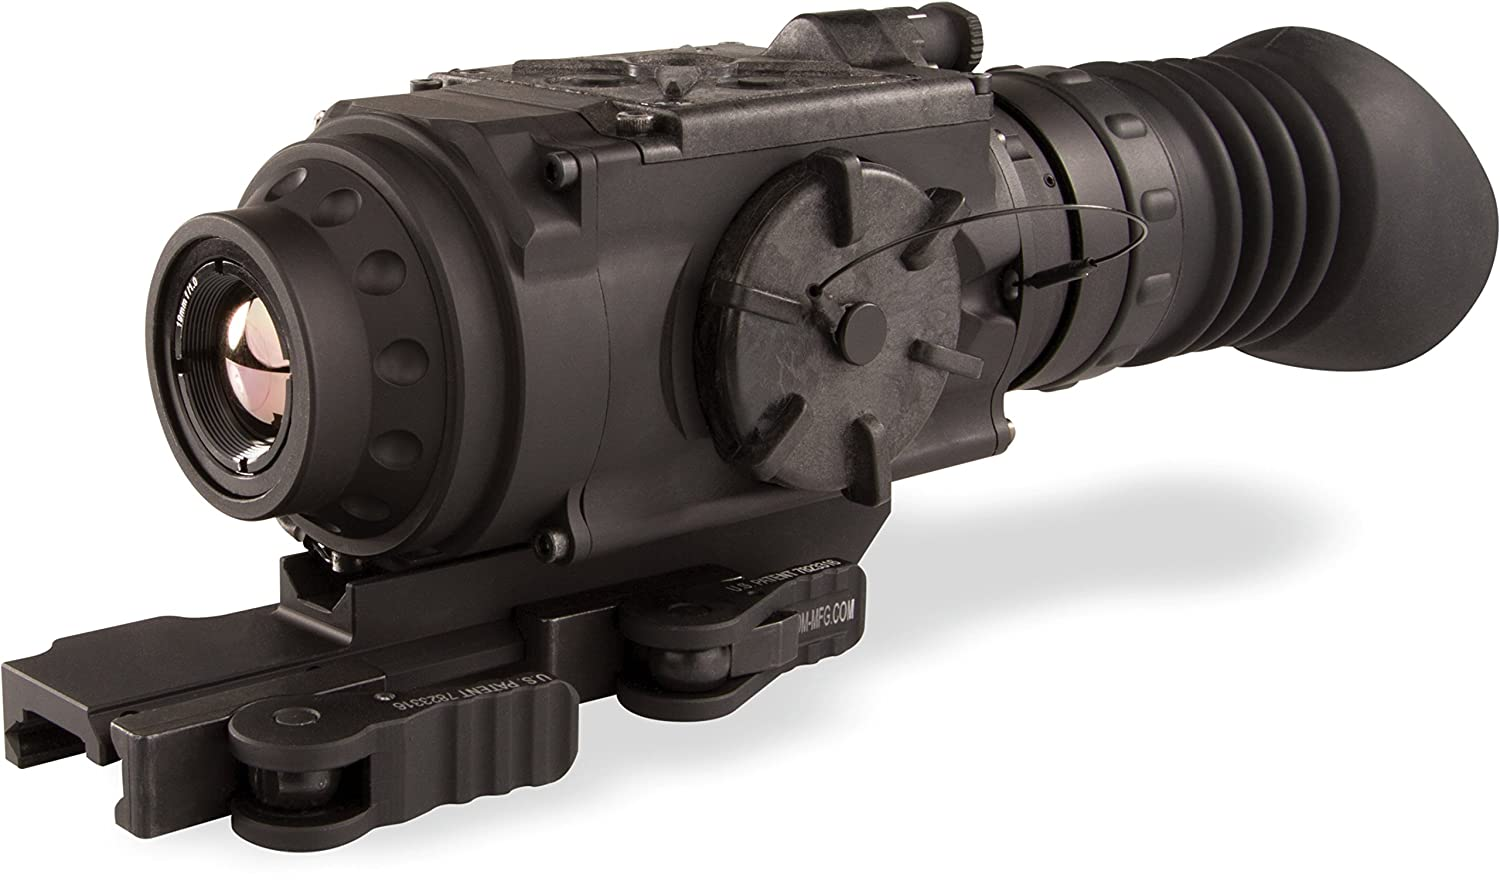 Amazon.com : FLIR Thermosight Pro PTS233 1.5-6x19mm Thermal Imaging Rifle Scope with Boson 320x256 12 micron 60Hz Core : Sports & Outdoors